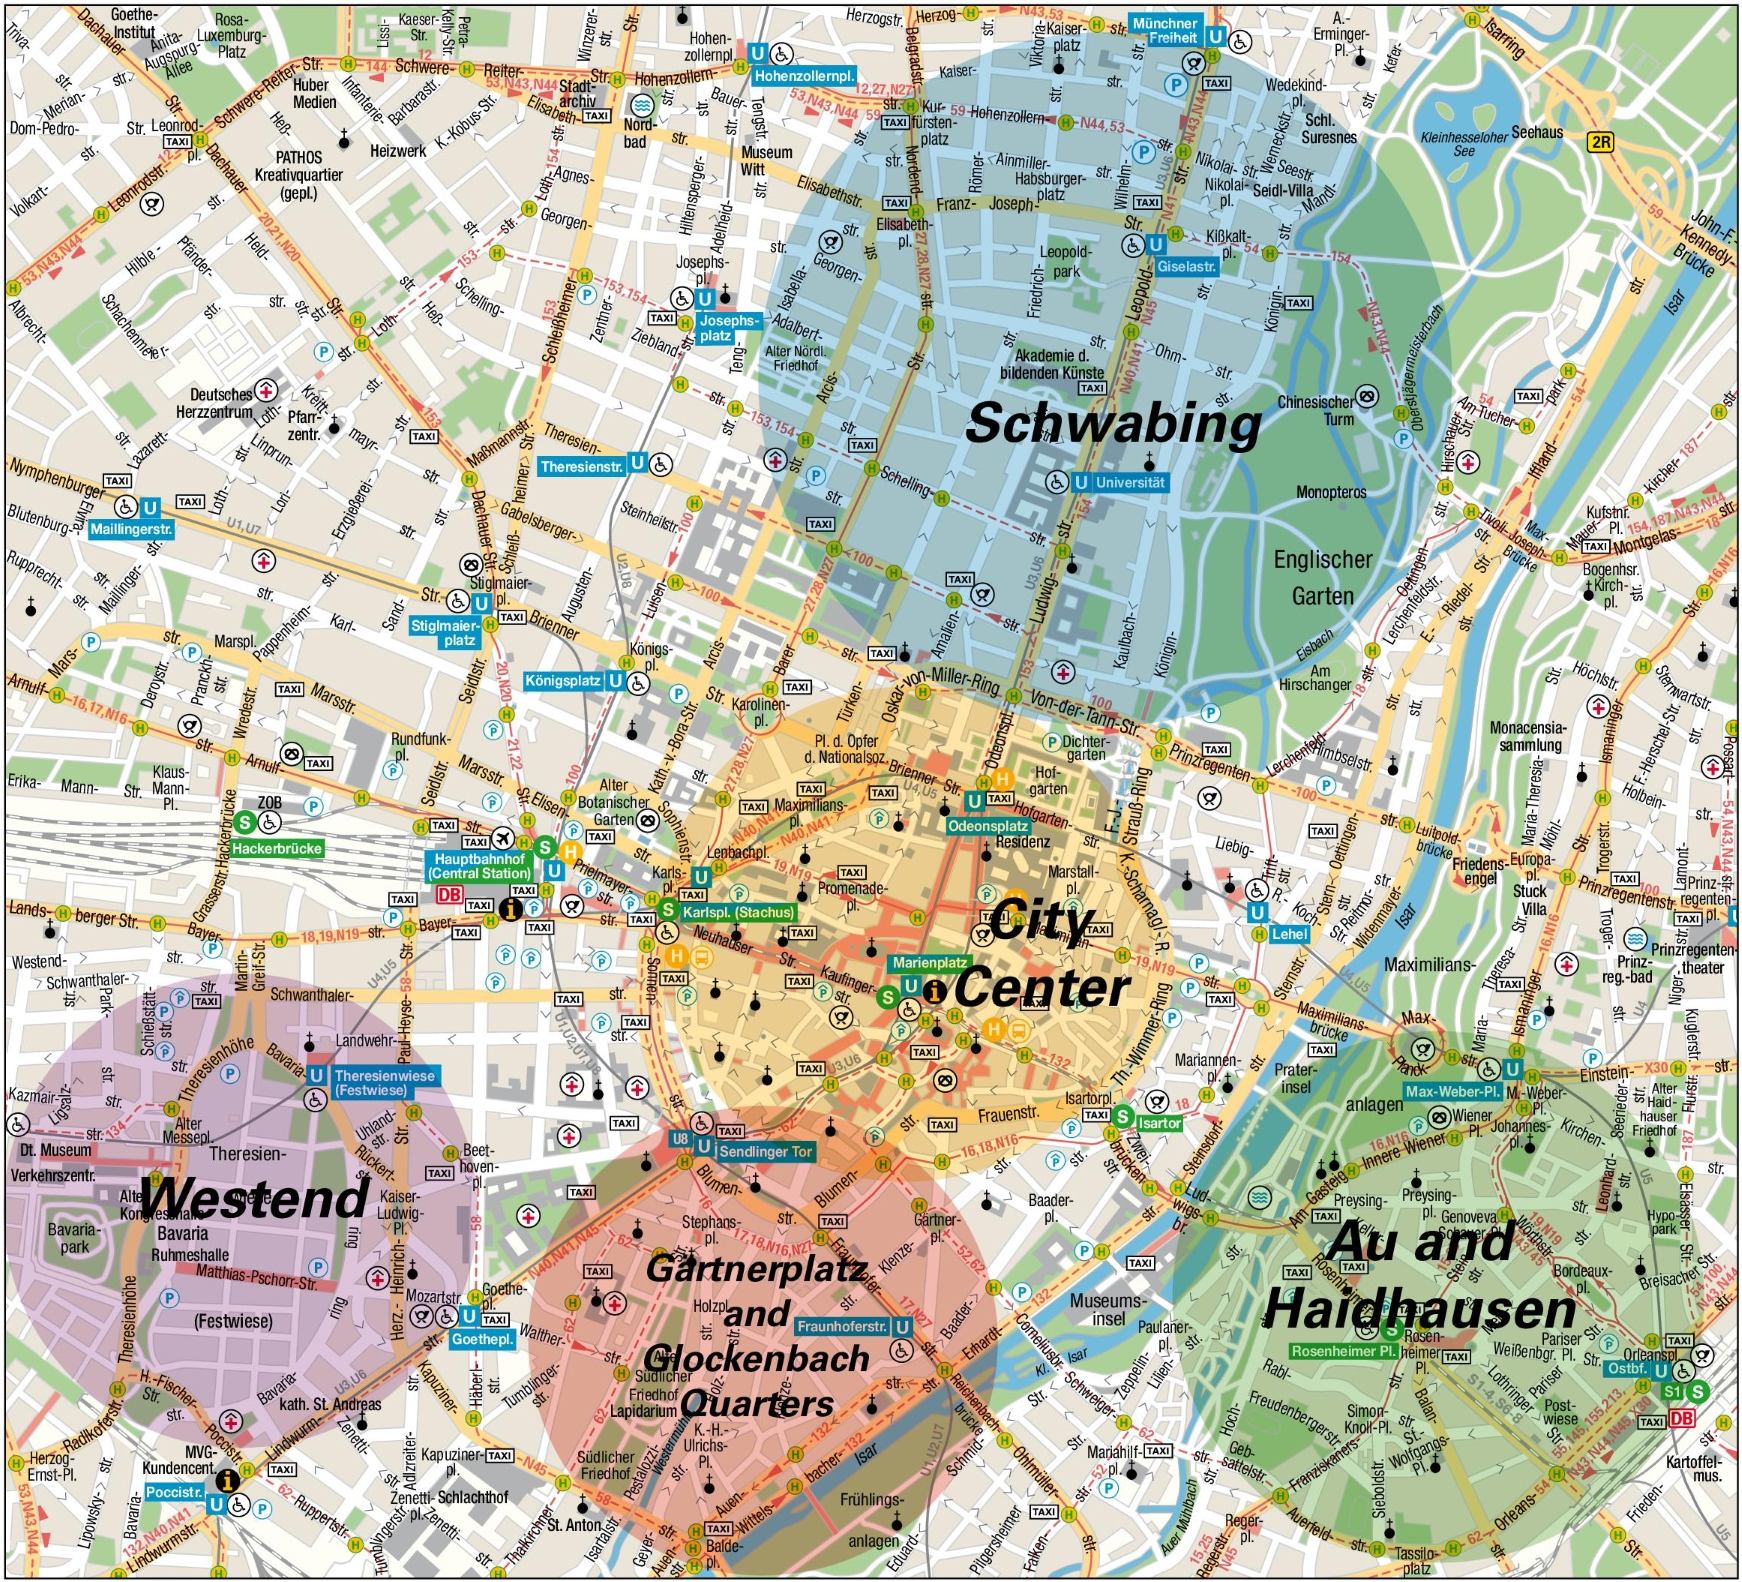 Munich Maps Germany – Munich Tourist Map